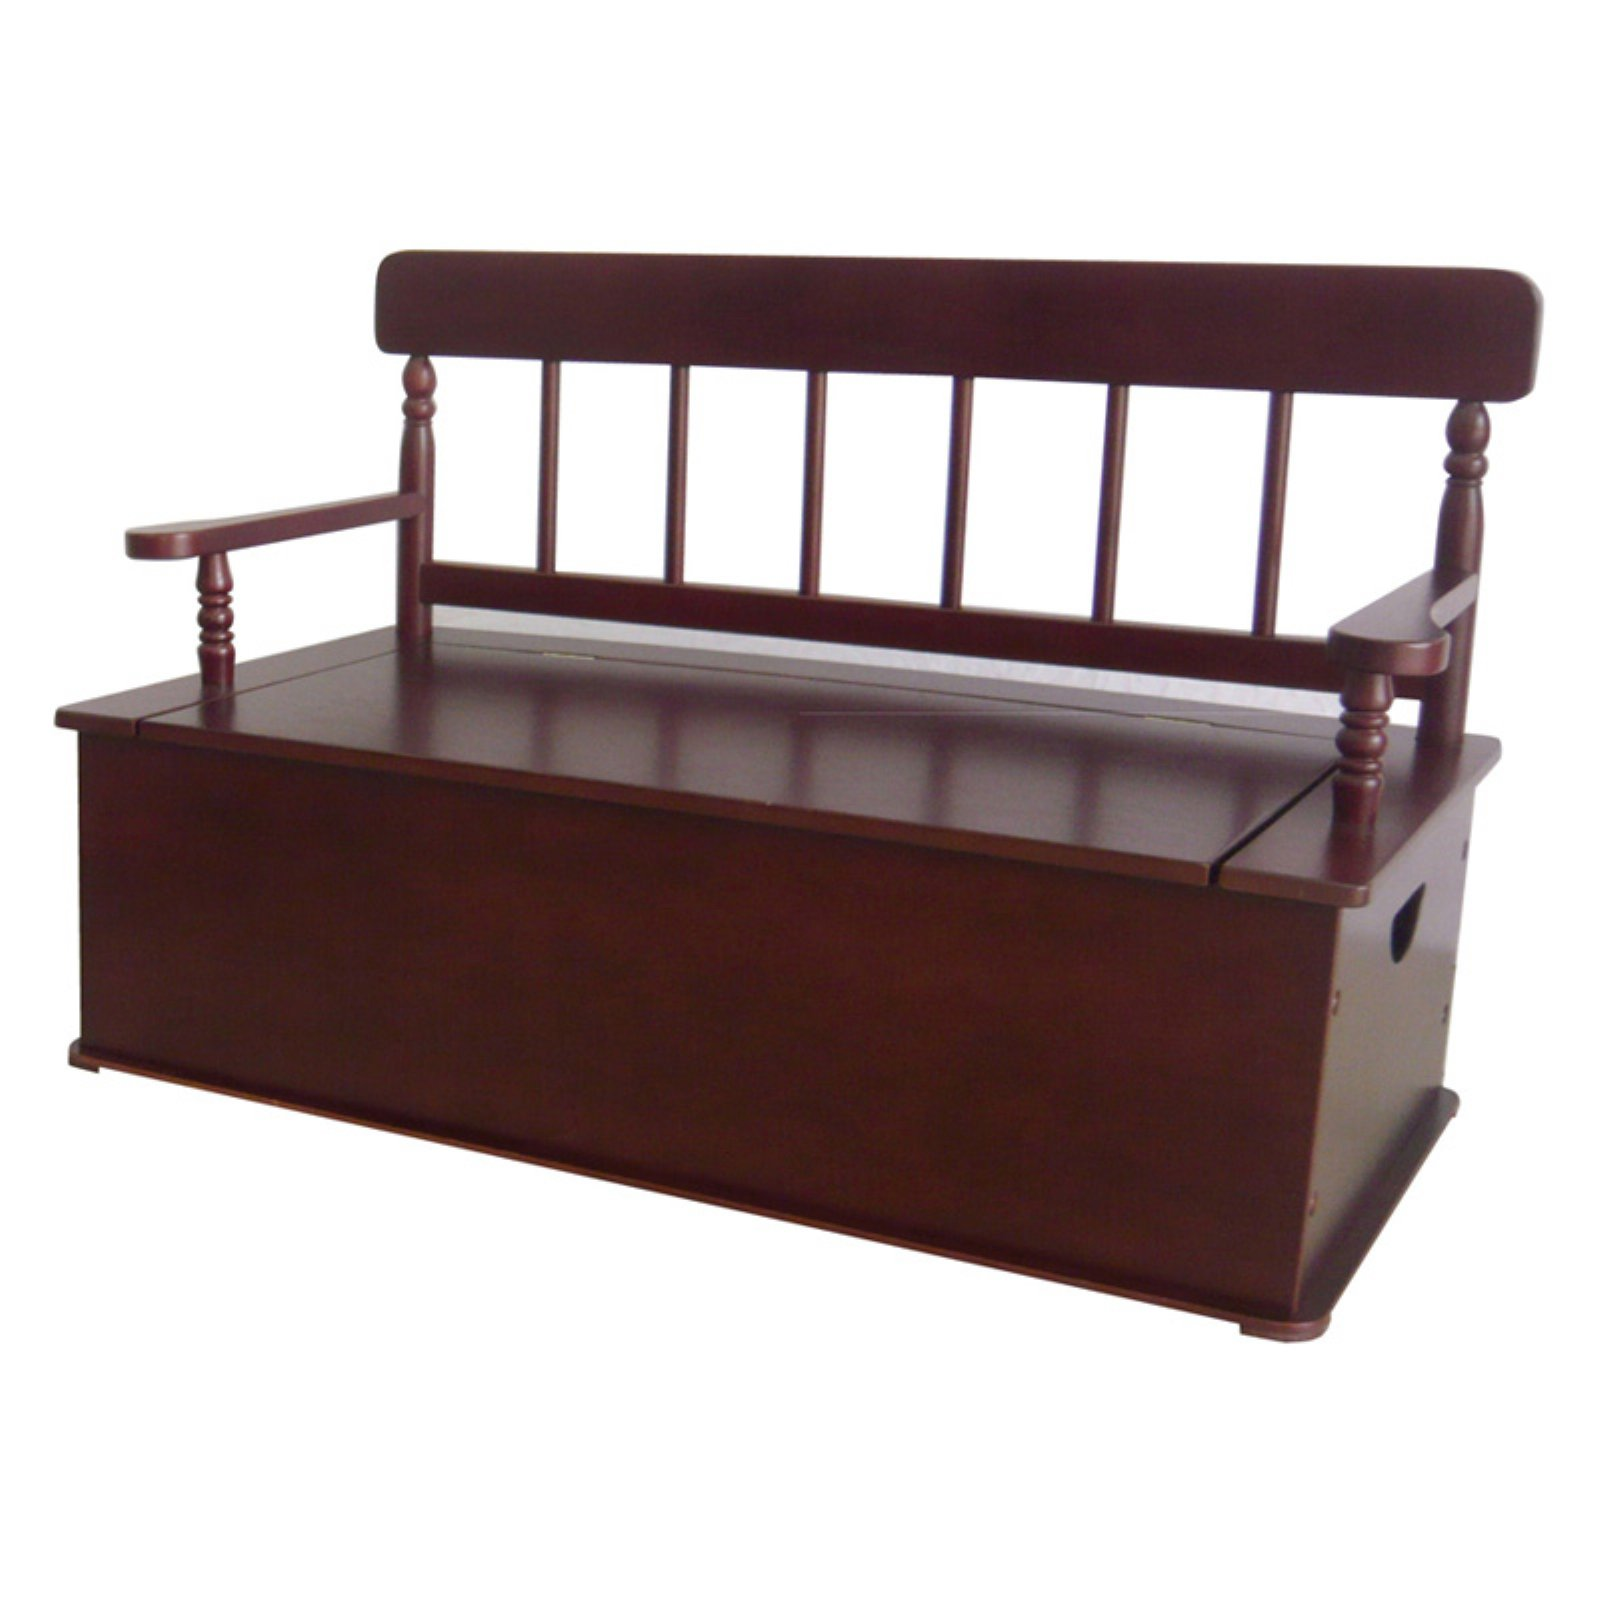 Wildkin Bench Seat w/ Storage - Cherry Finish